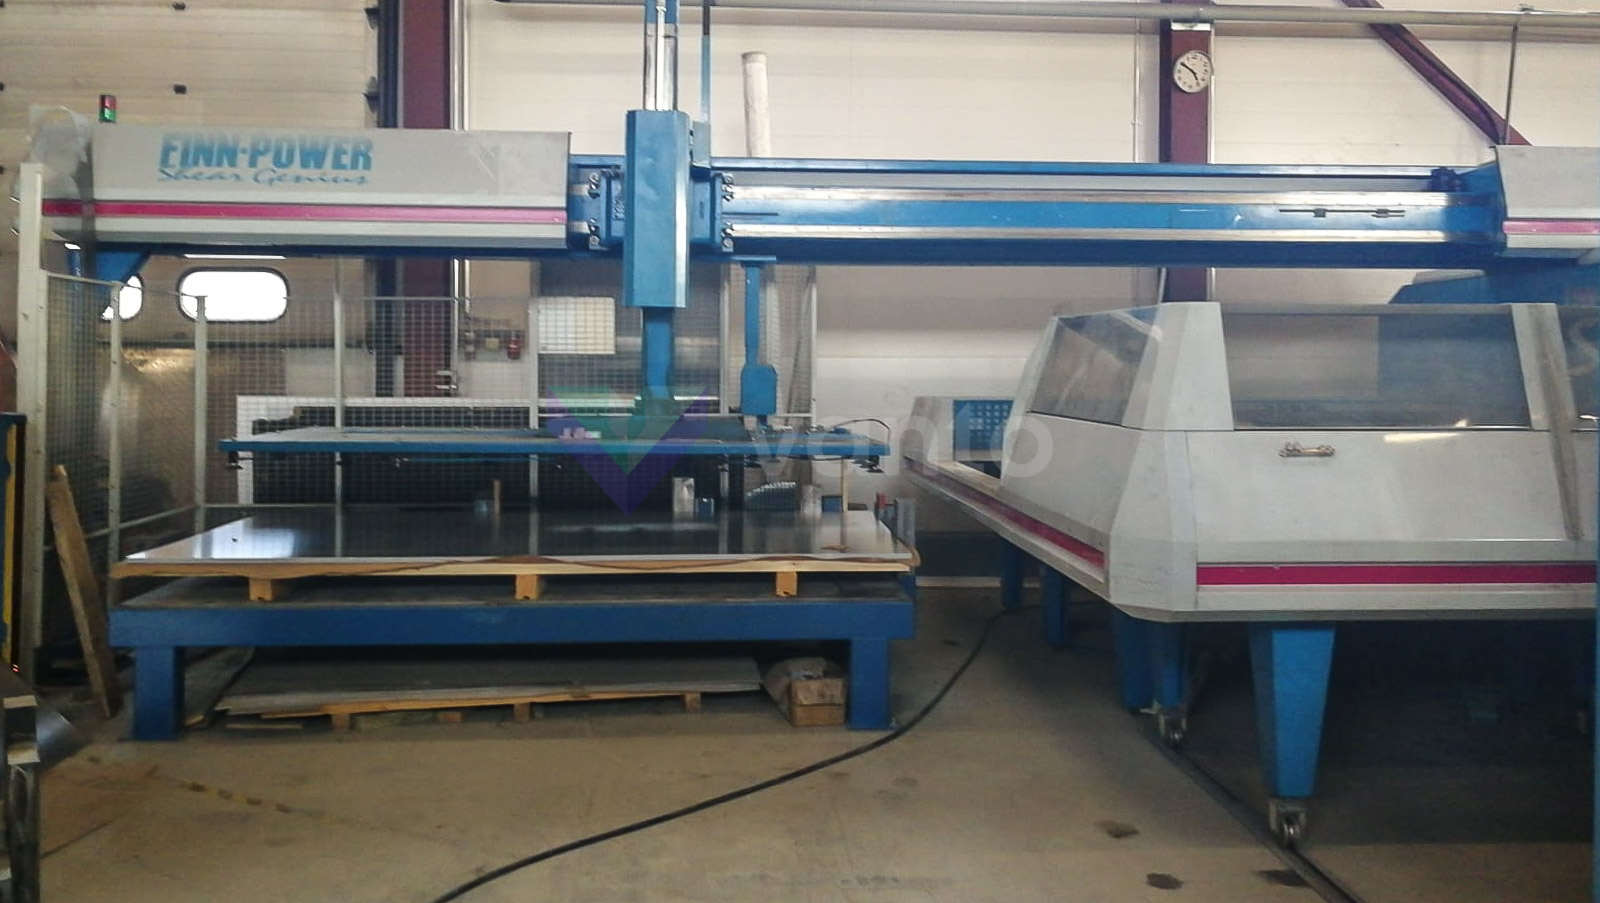 FINN POWER TRS6 CNC punching machine (1997) id10432